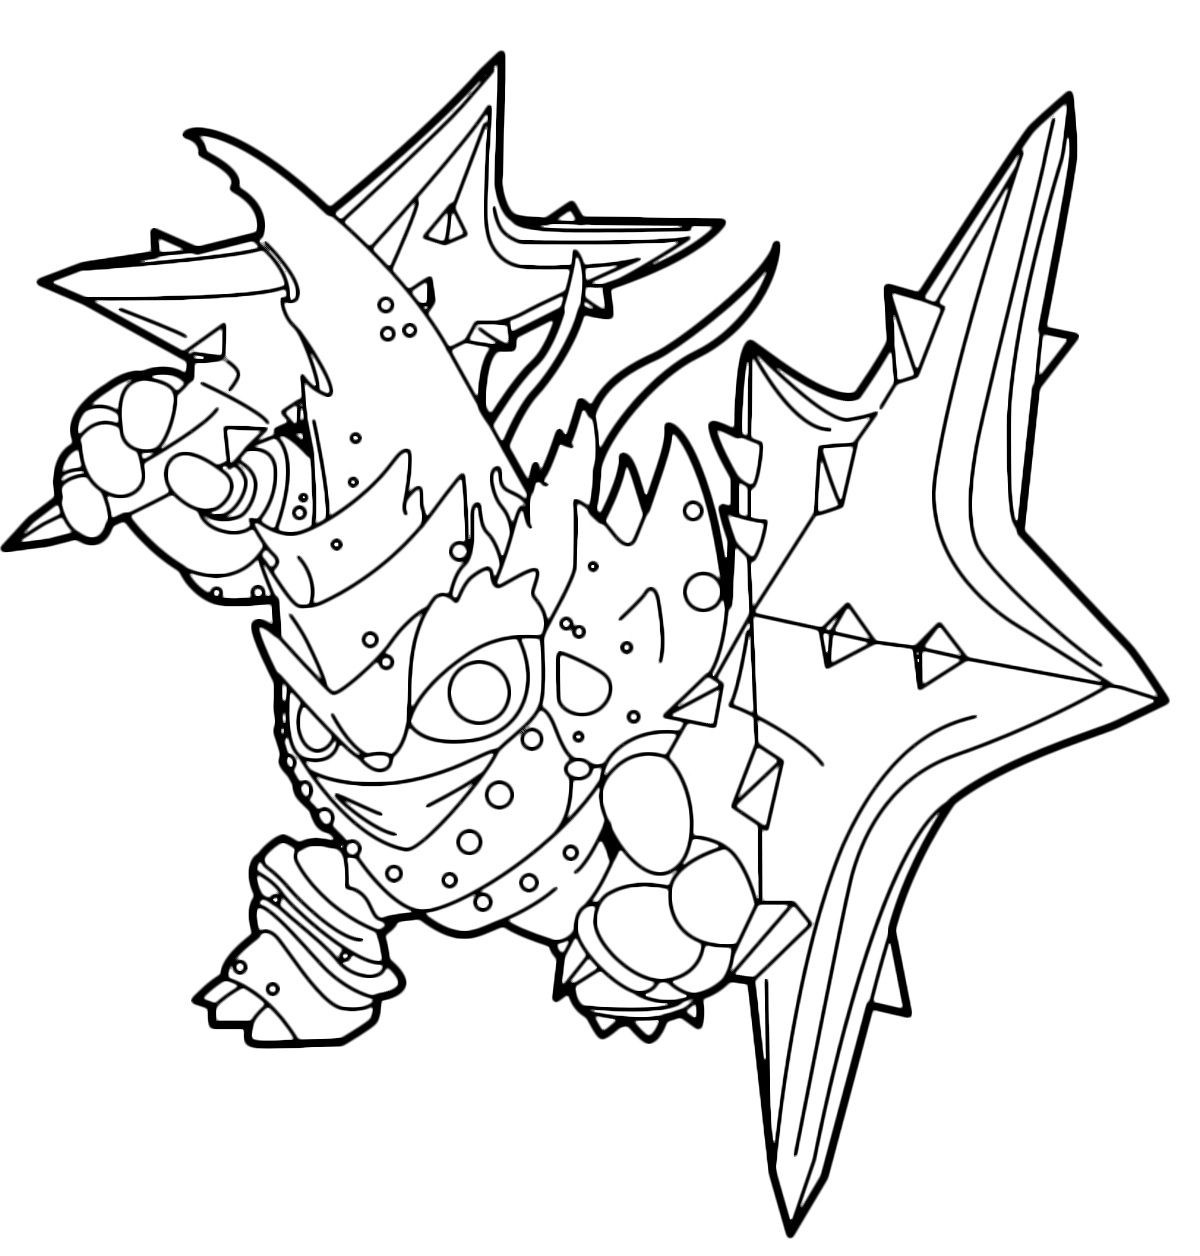 skylanders trap team coloring pages golden queen | Skylanders Golden Queen Coloring Page Coloring Pages